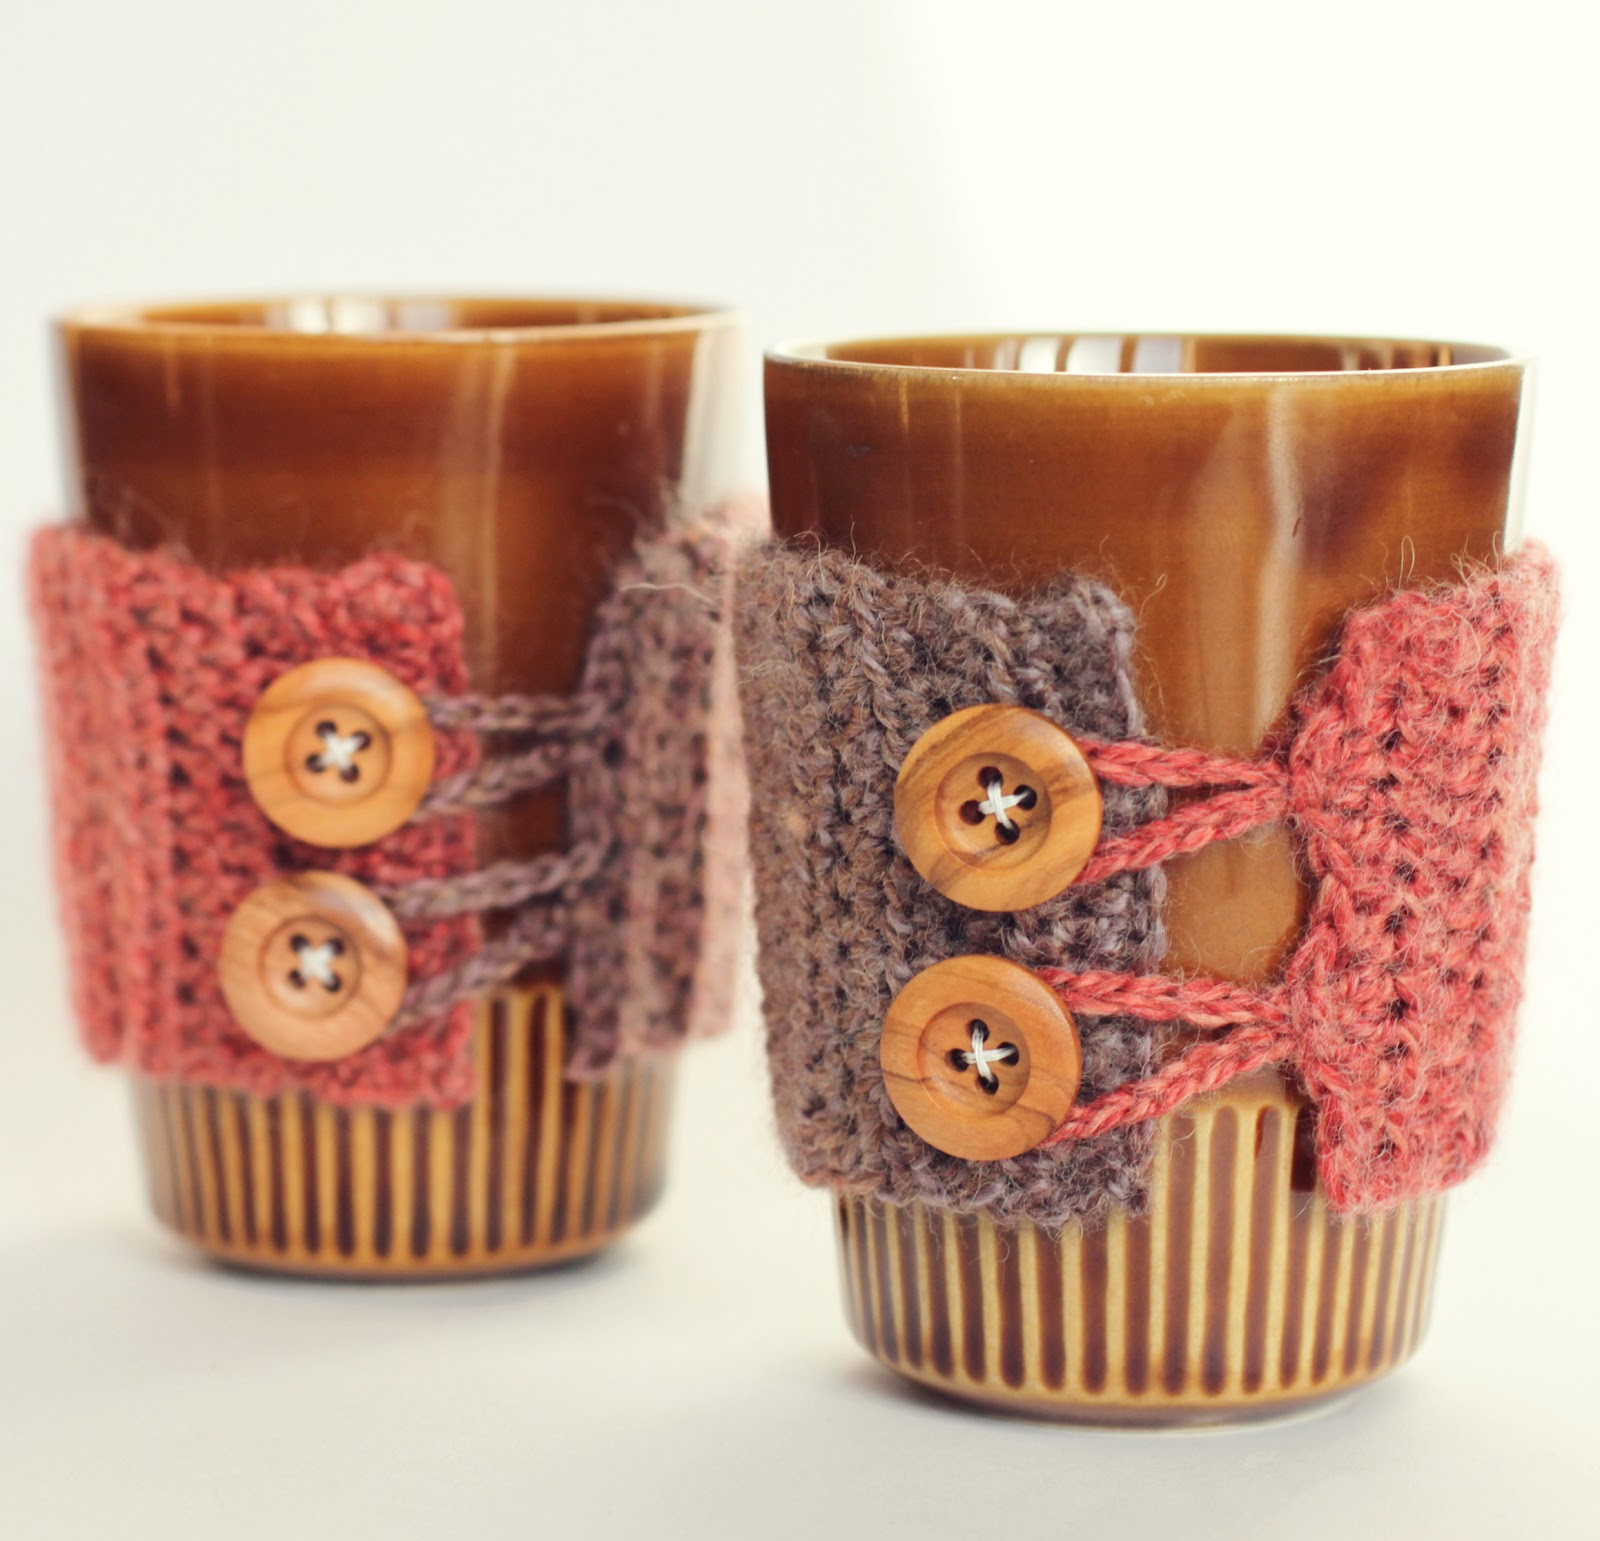 Crochet Coffee Cup Cozy Lovely L♥valizious Mug Cozy Tutorial Of Crochet Coffee Cup Cozy New Crochet Tea Cozy Coffee Cup Sleeve Coffee Sleeve Mug Cozy